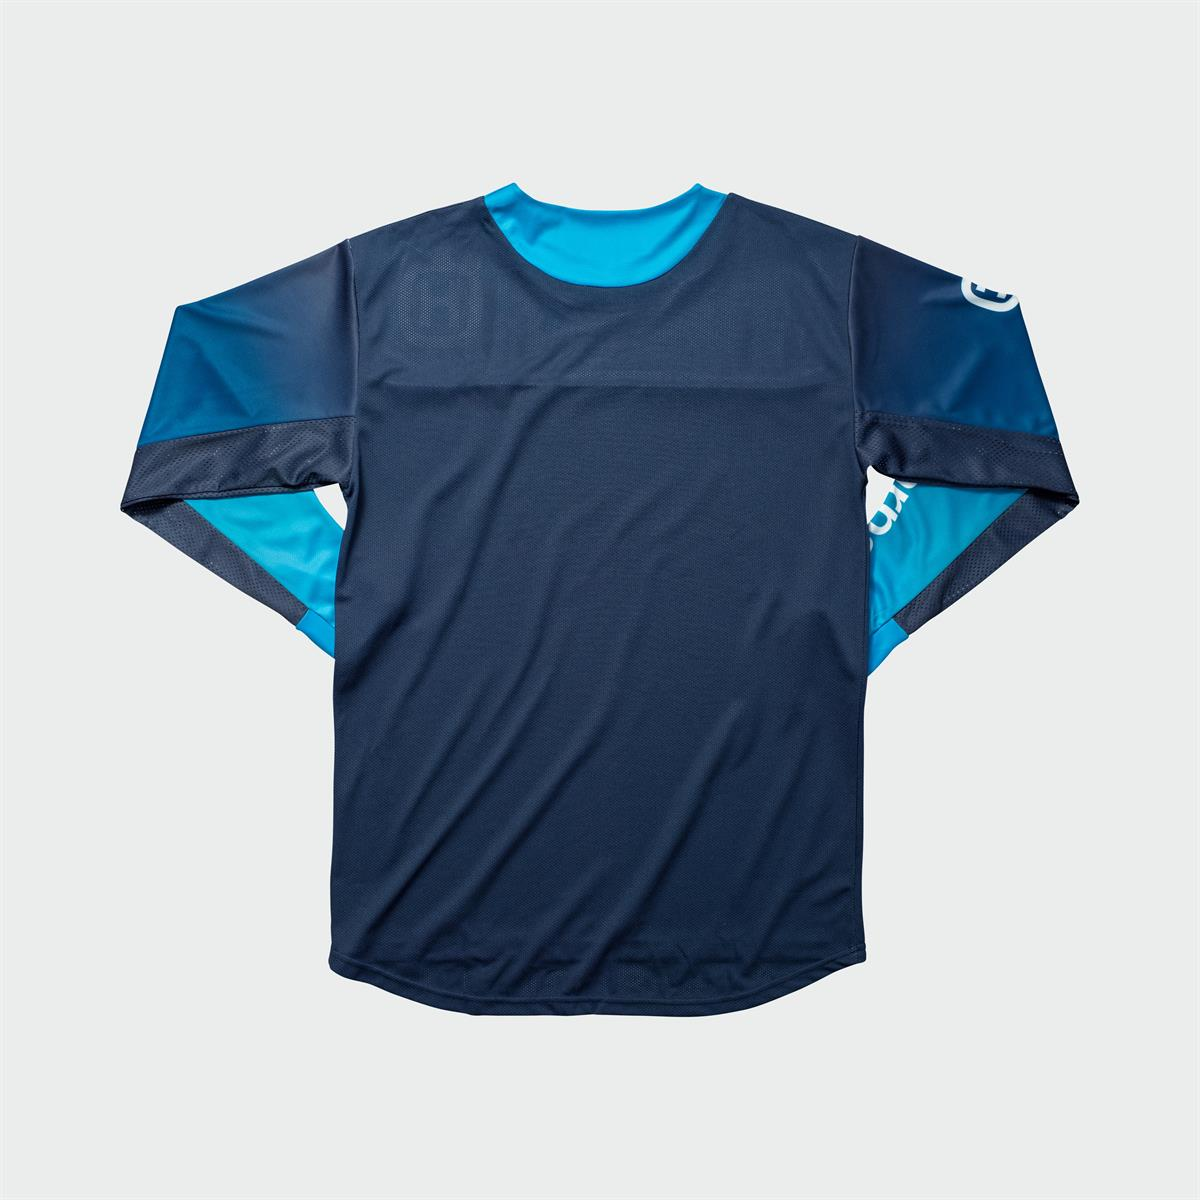 Husqvarna Functional Clothing - GOTLAND SHIRT BLUE back